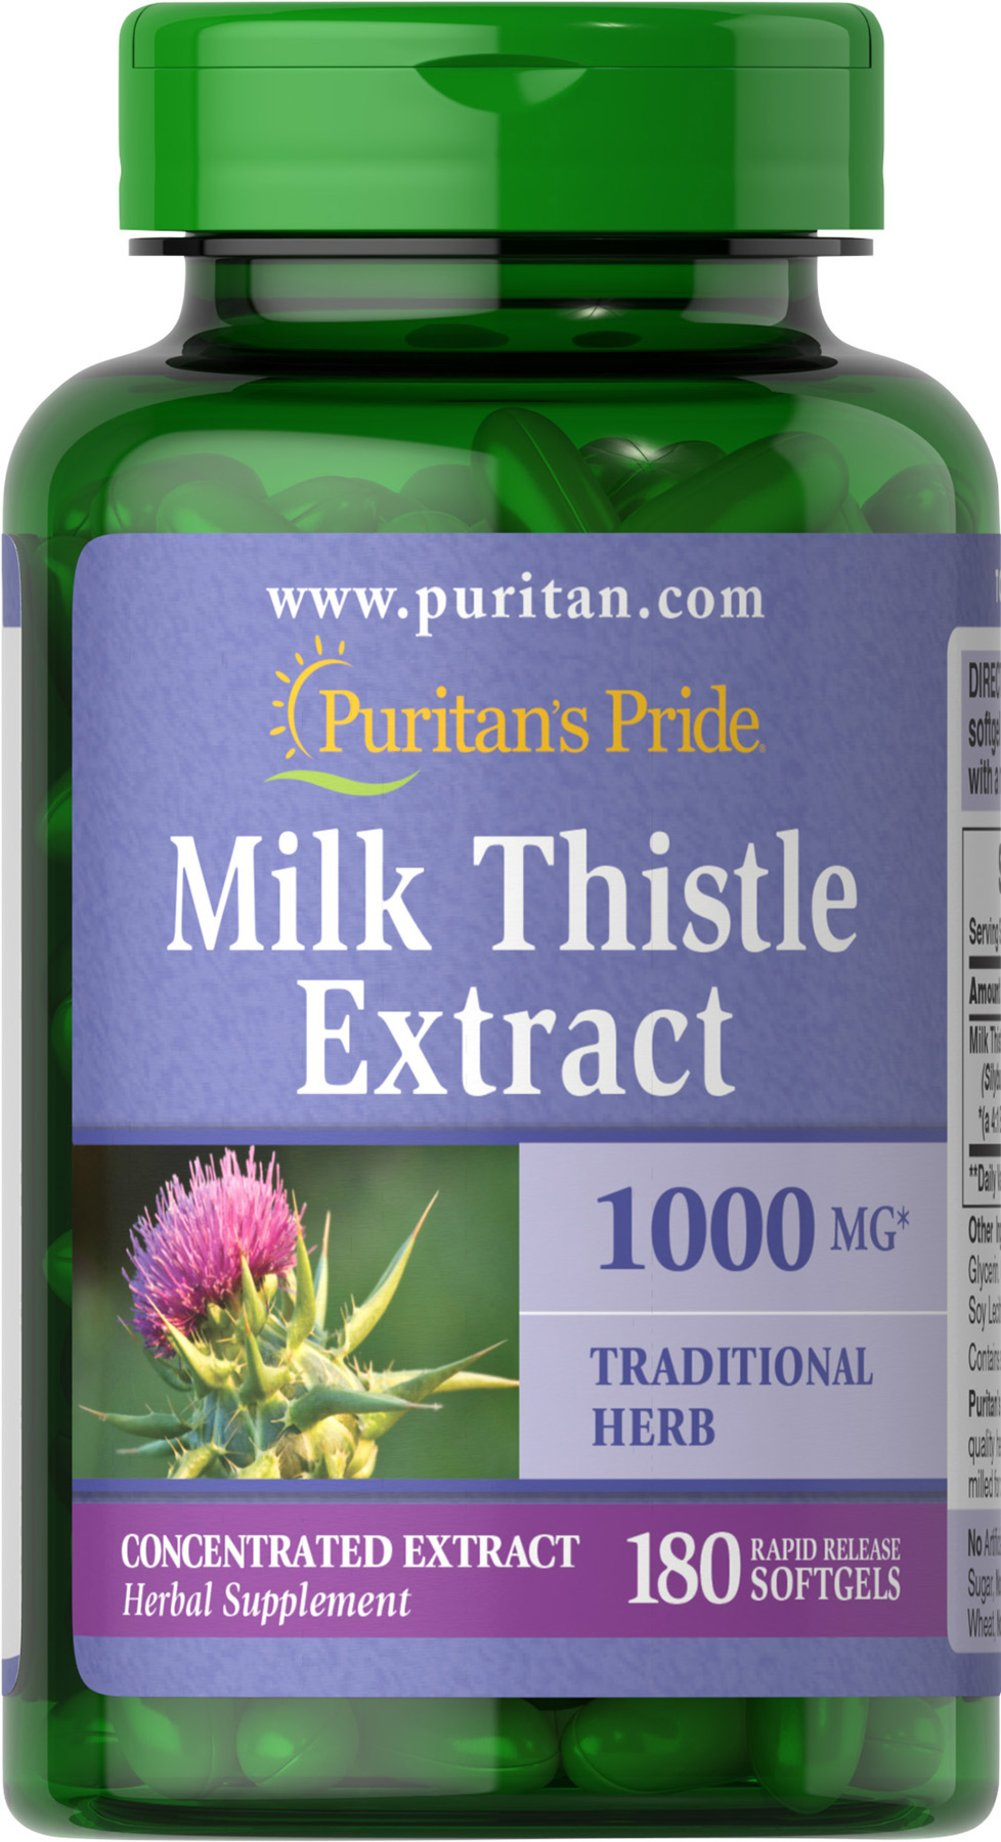 Milk Thistle 1000 mg 4:1 Extract (Silymarin)